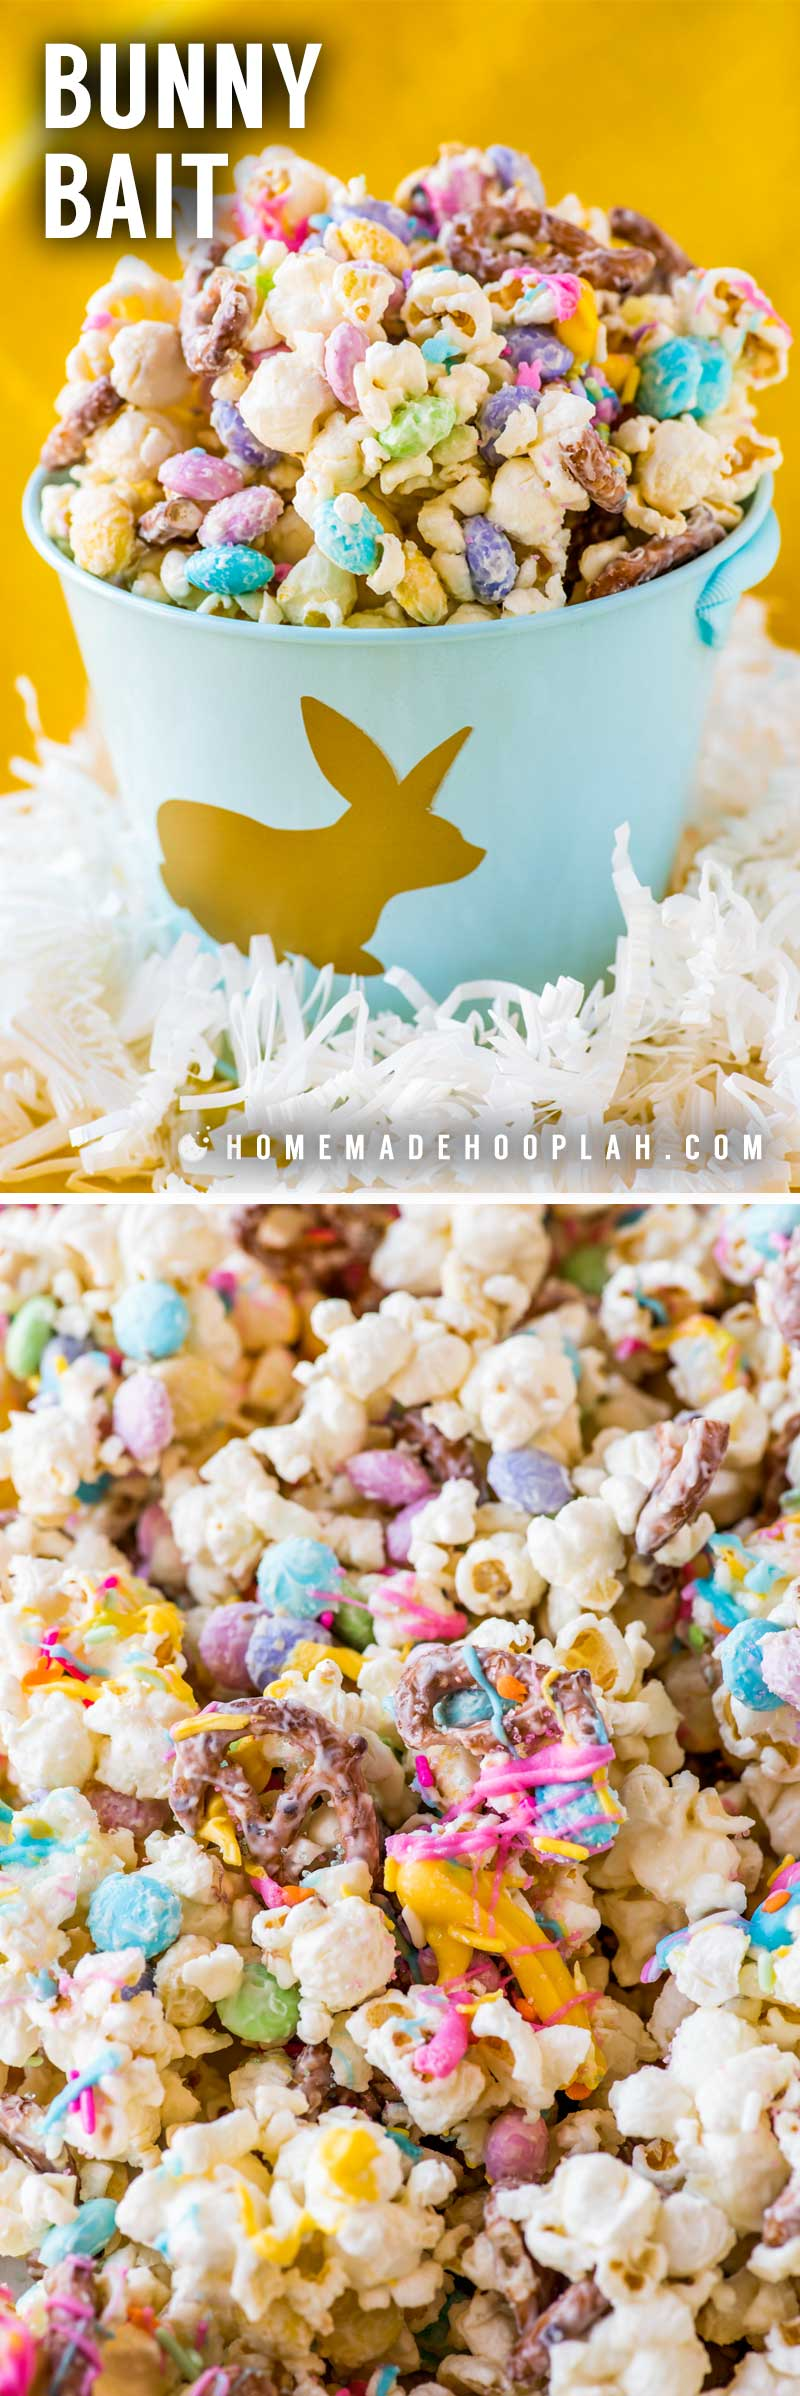 Bunny Bait! Sometimes called bunny bait or Easter crack, this funfetti popcorn is a spring-themed snack mix of pastel-colored candy, sprinkles, and freshly popped popcorn. | HomemadeHooplah.com